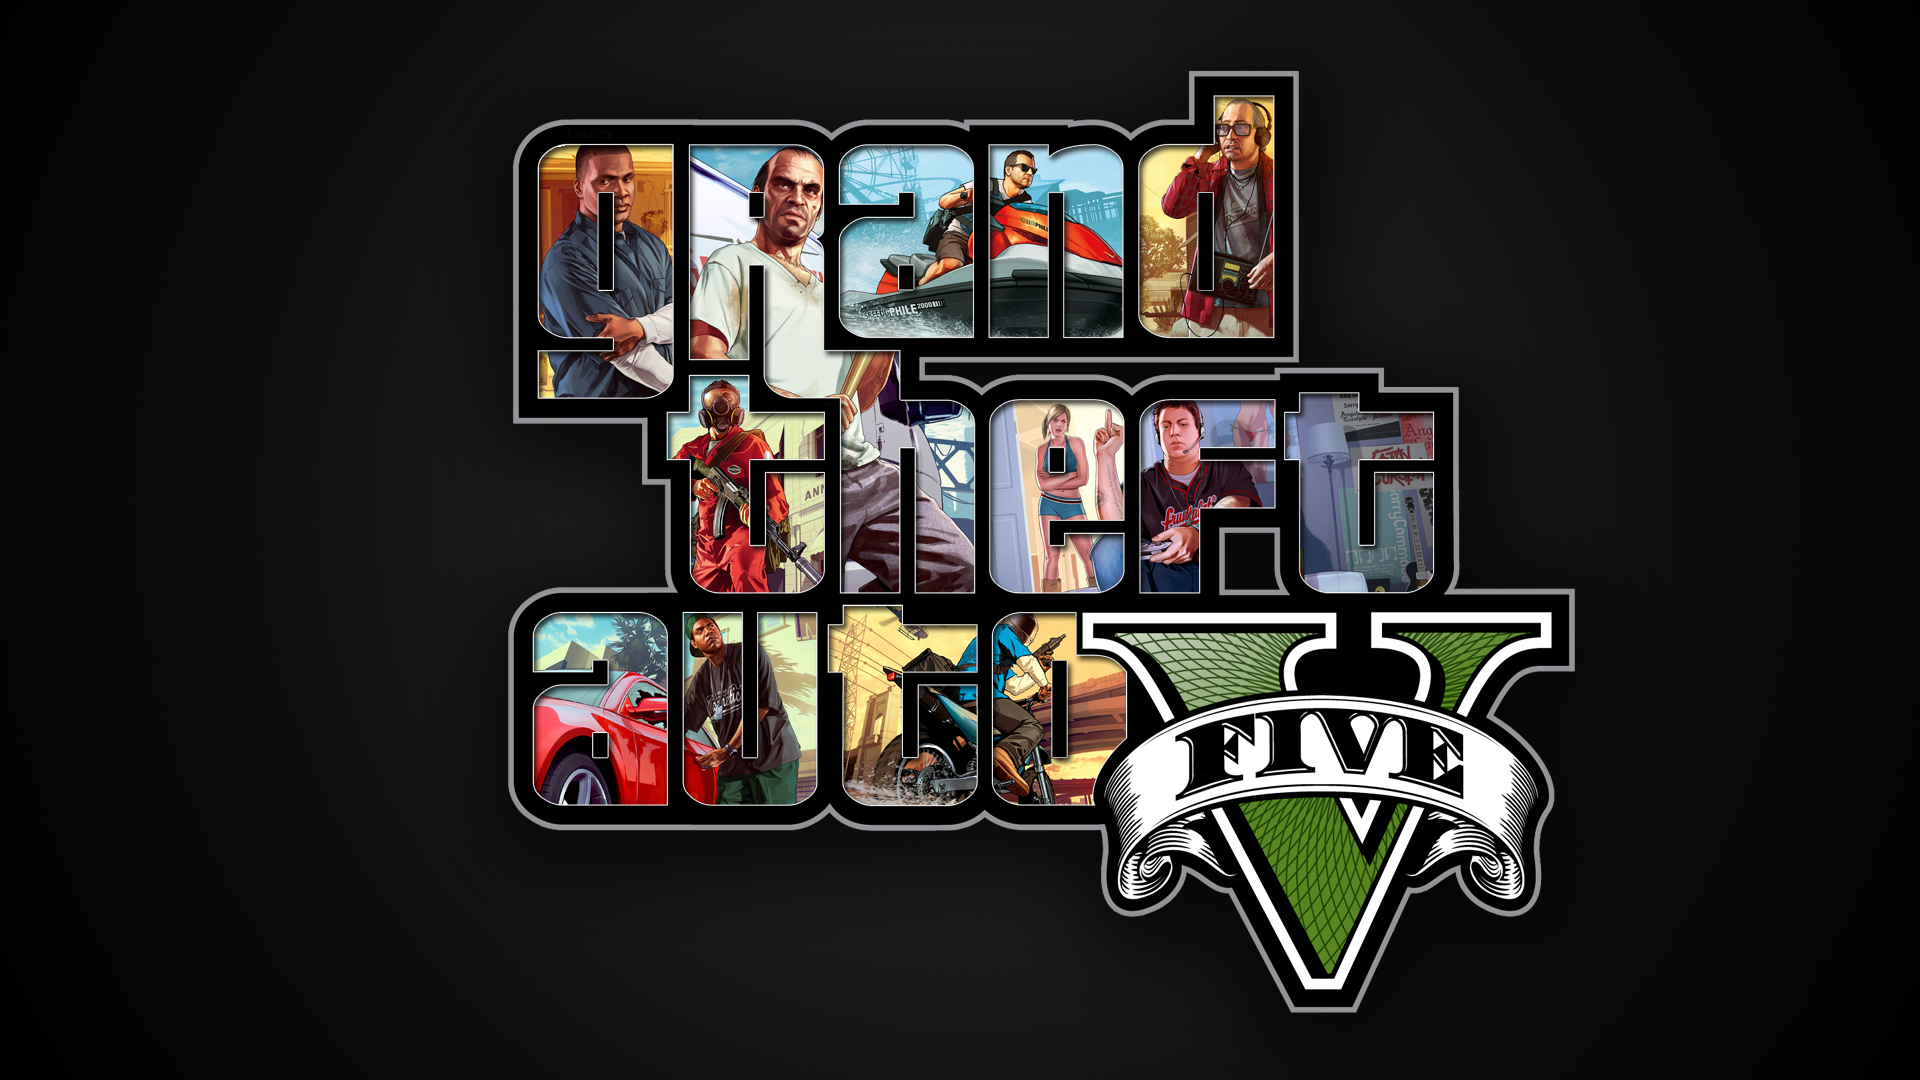 gta v wallpaper by xtiiger watch fan art wallpaper games 2013 2016 1920x1080